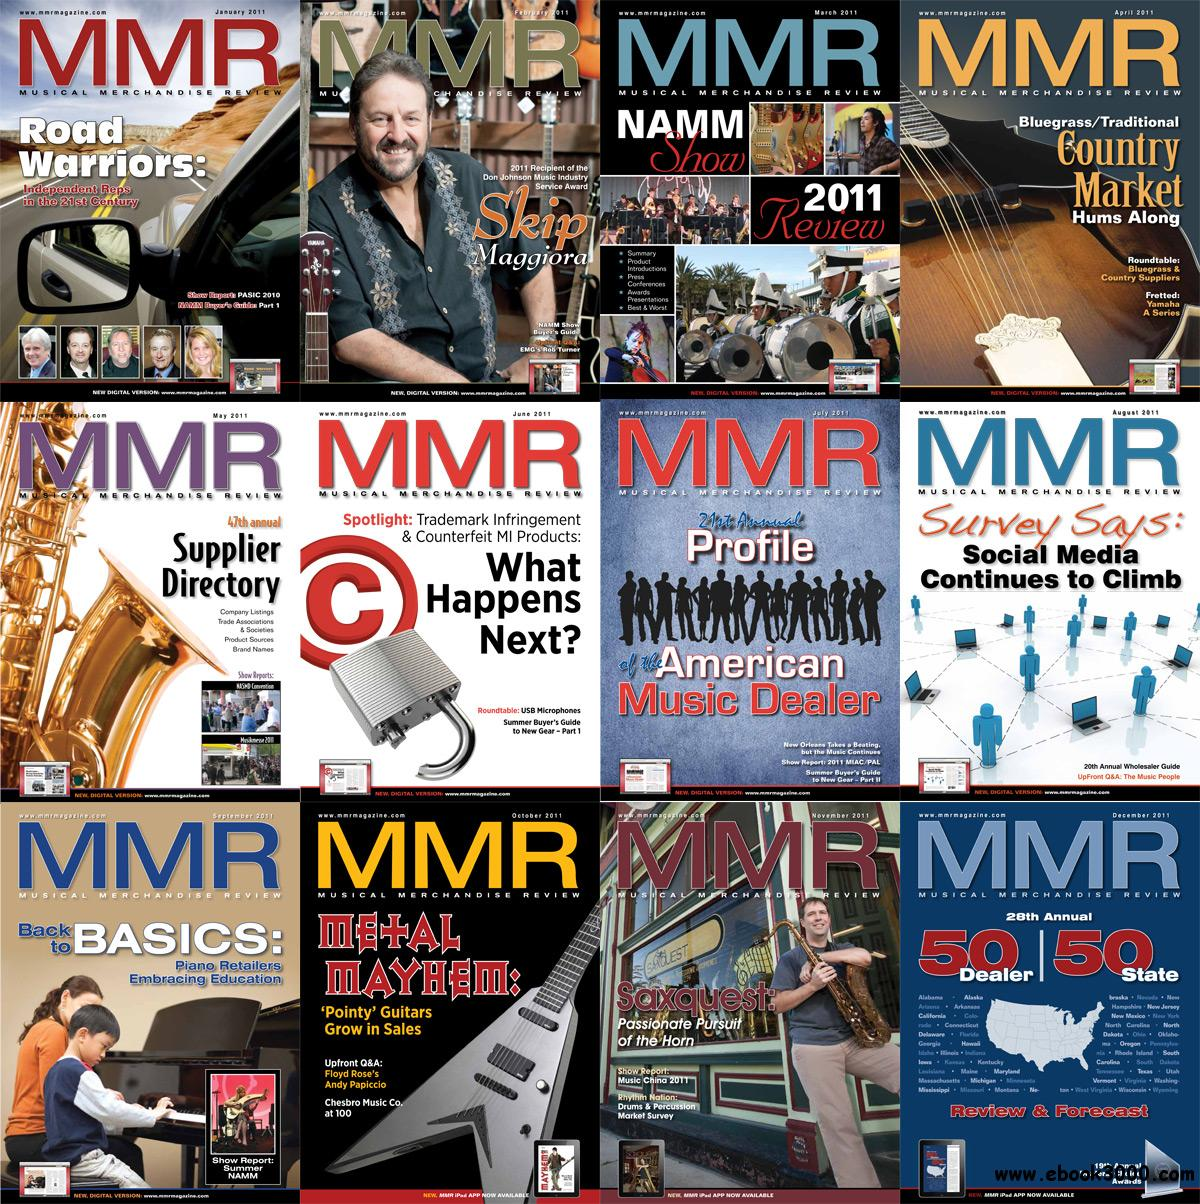 Musical Merchandise Review (MMR) 2011 Full Year Collection free download